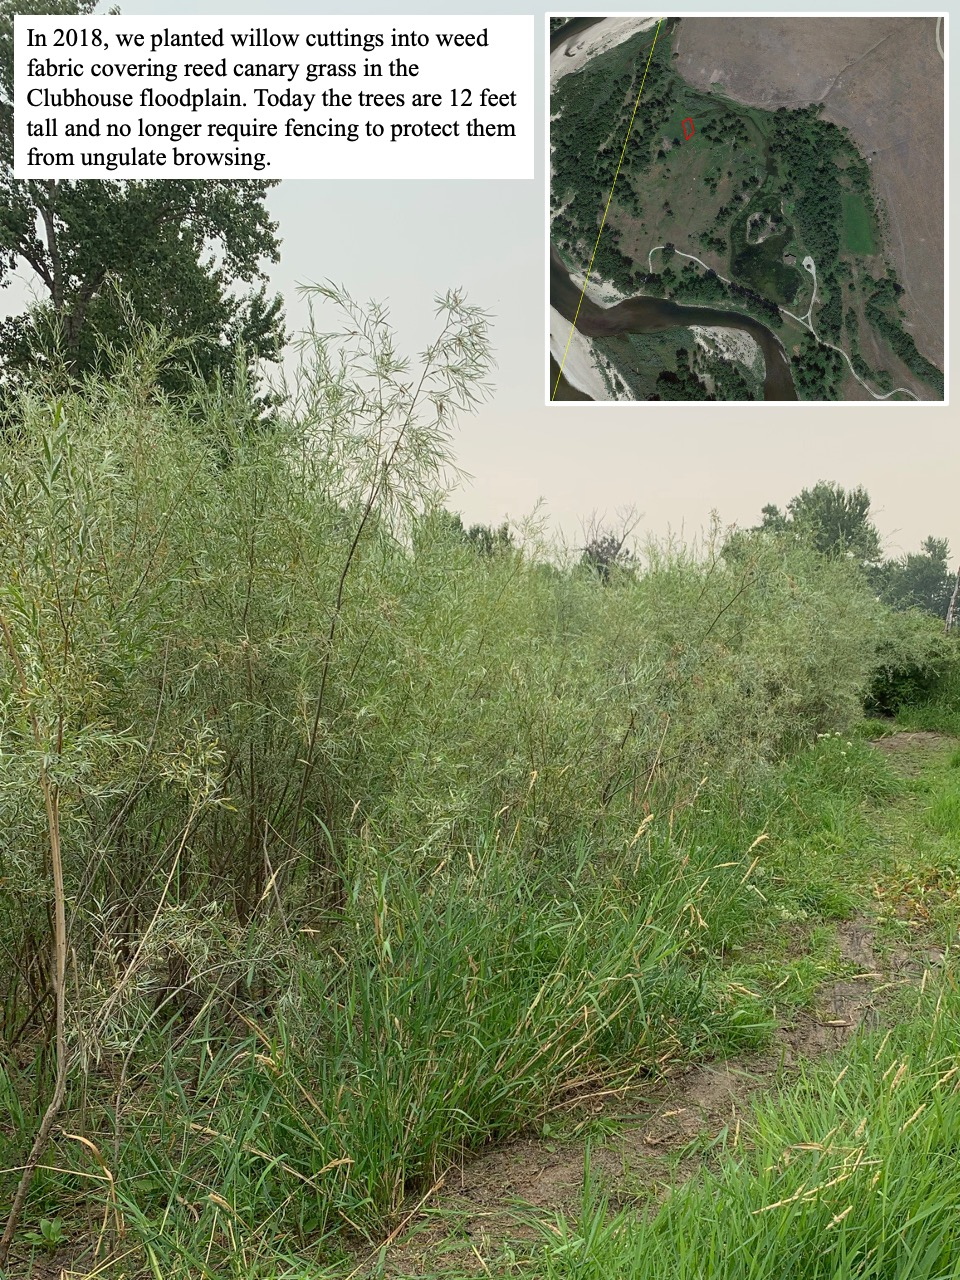 In 2018, we planted willow cuttings into weed fabric covering reed canary grass in the Clubhouse floodplain.